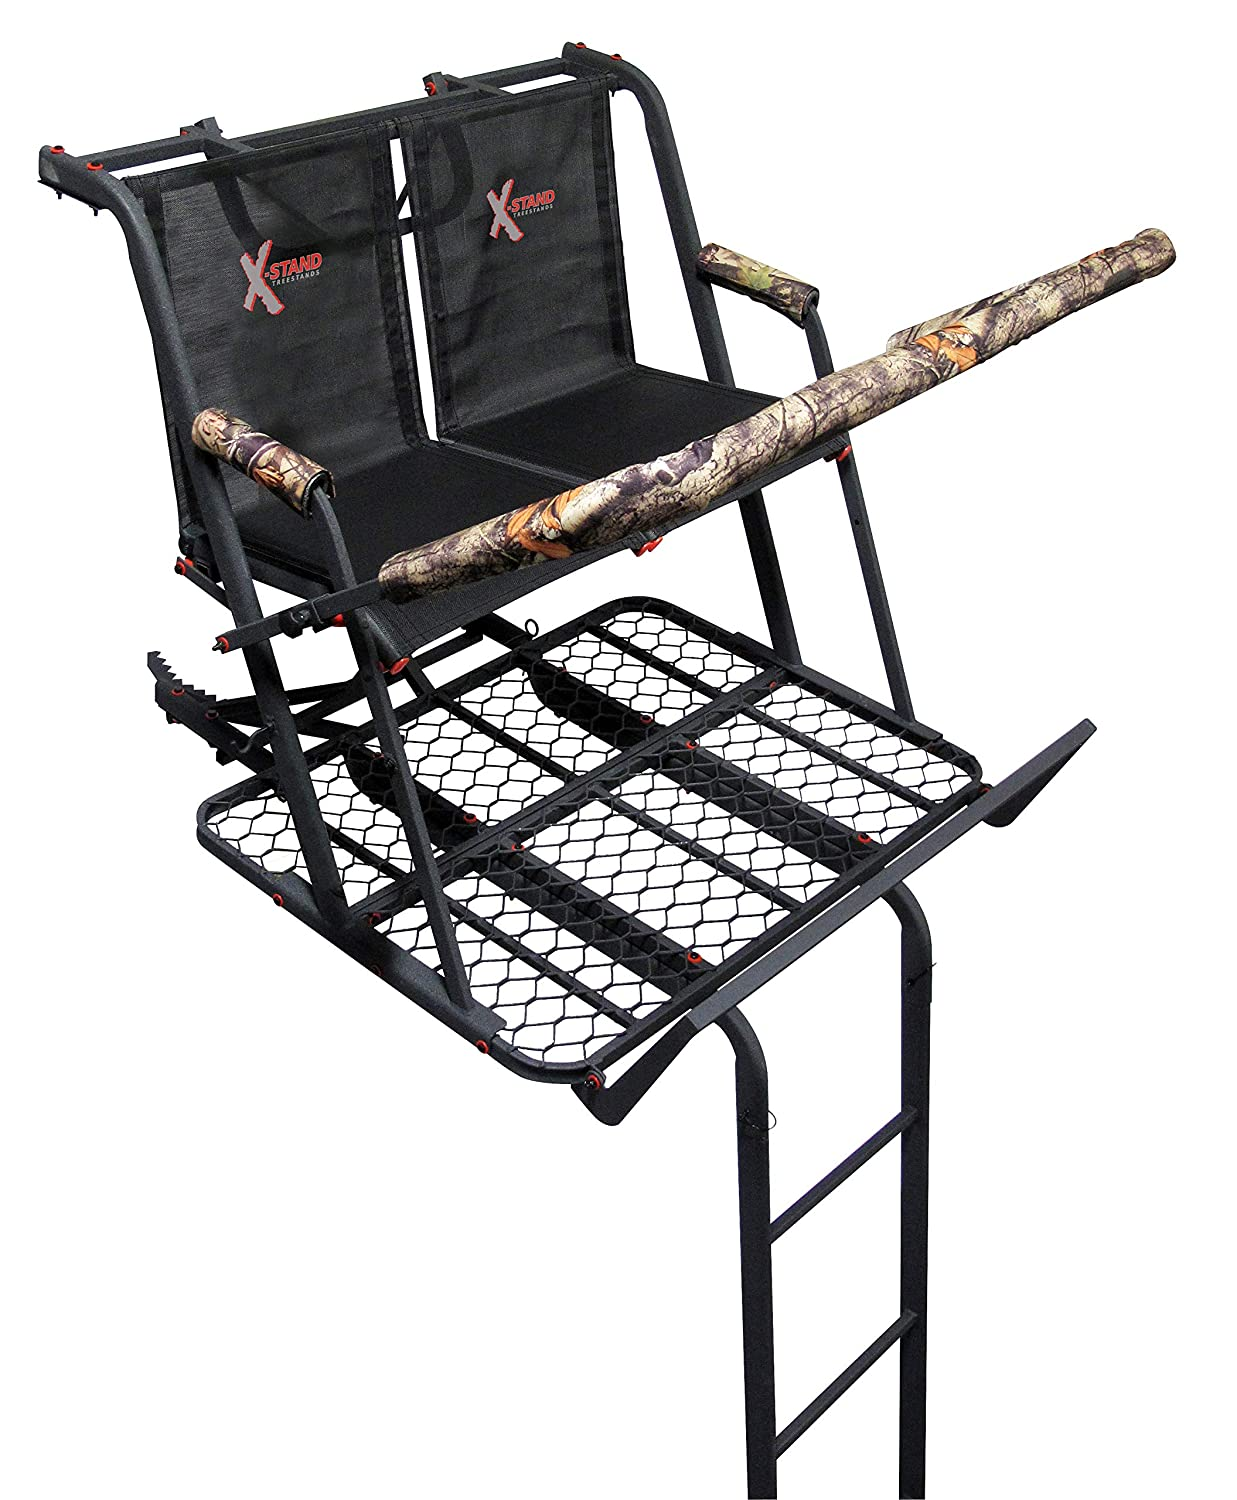 Two-Person Ladderstand Hunting Tree Stand